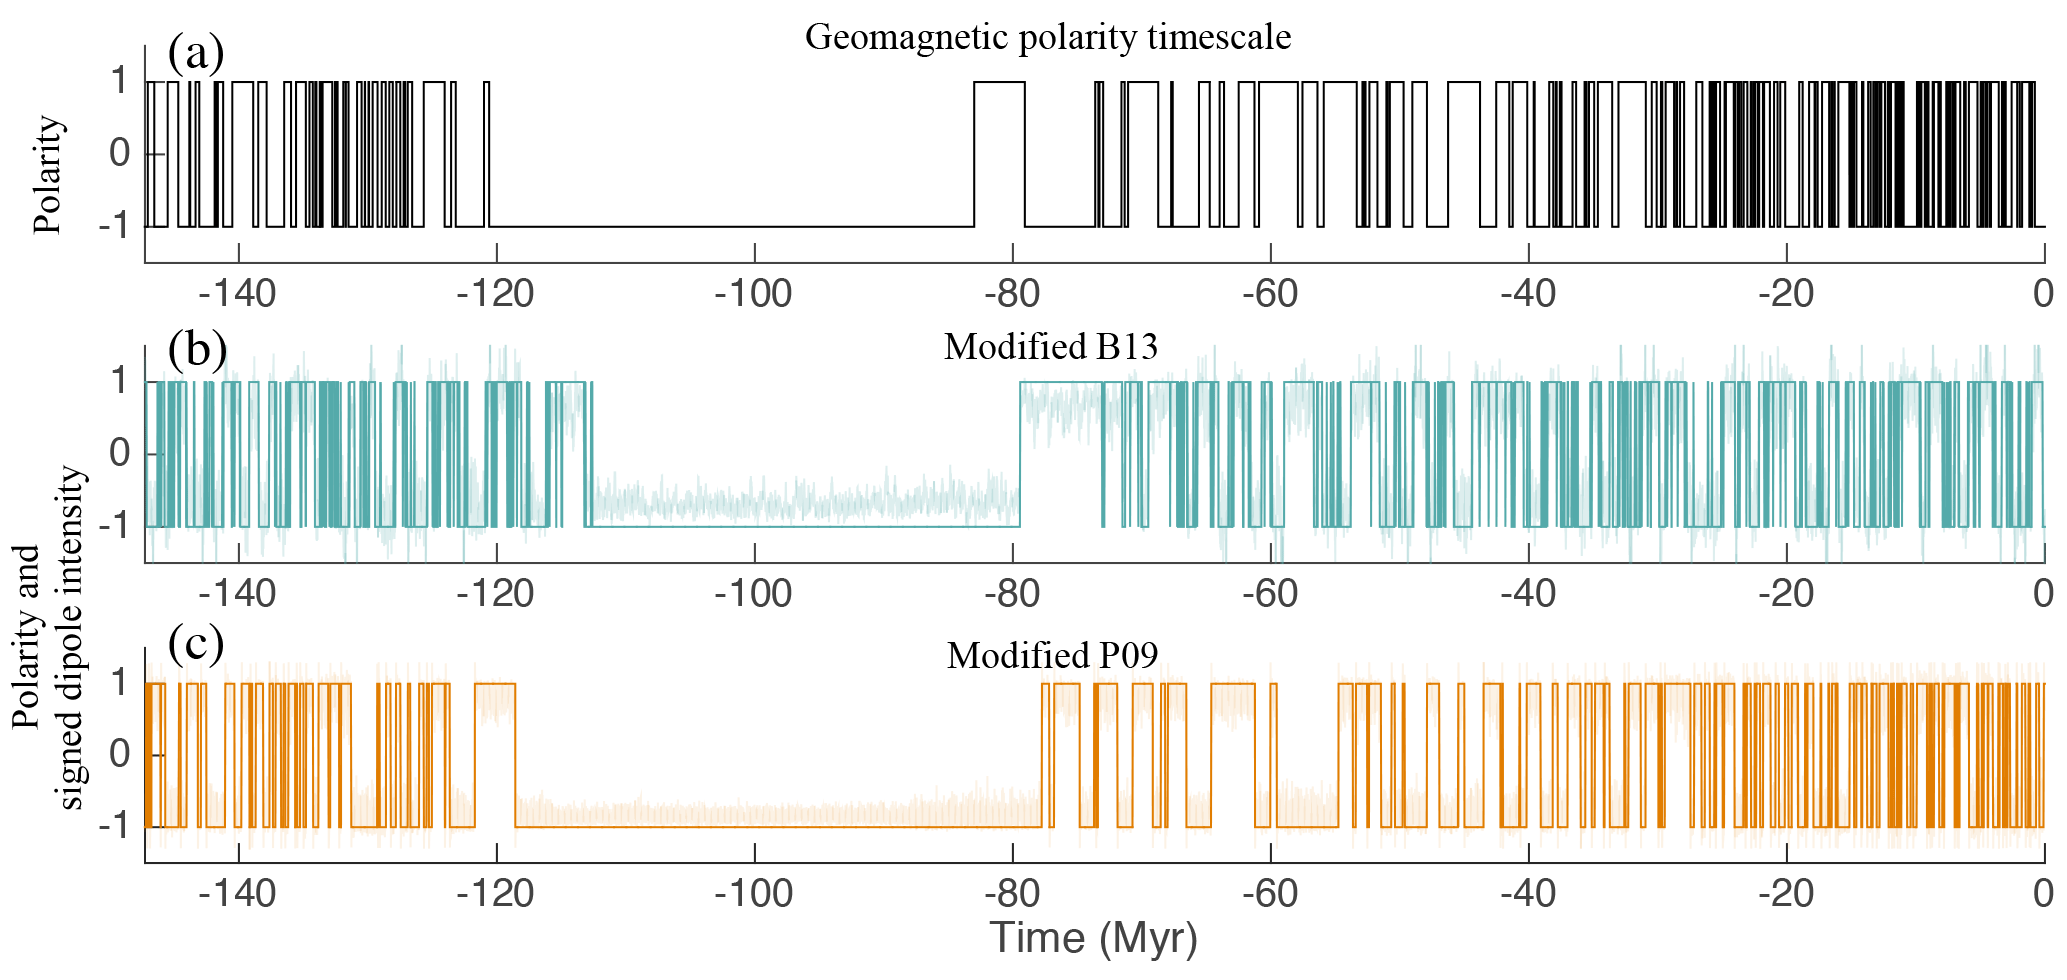 NPG - Feature-based data assimilation in geophysics